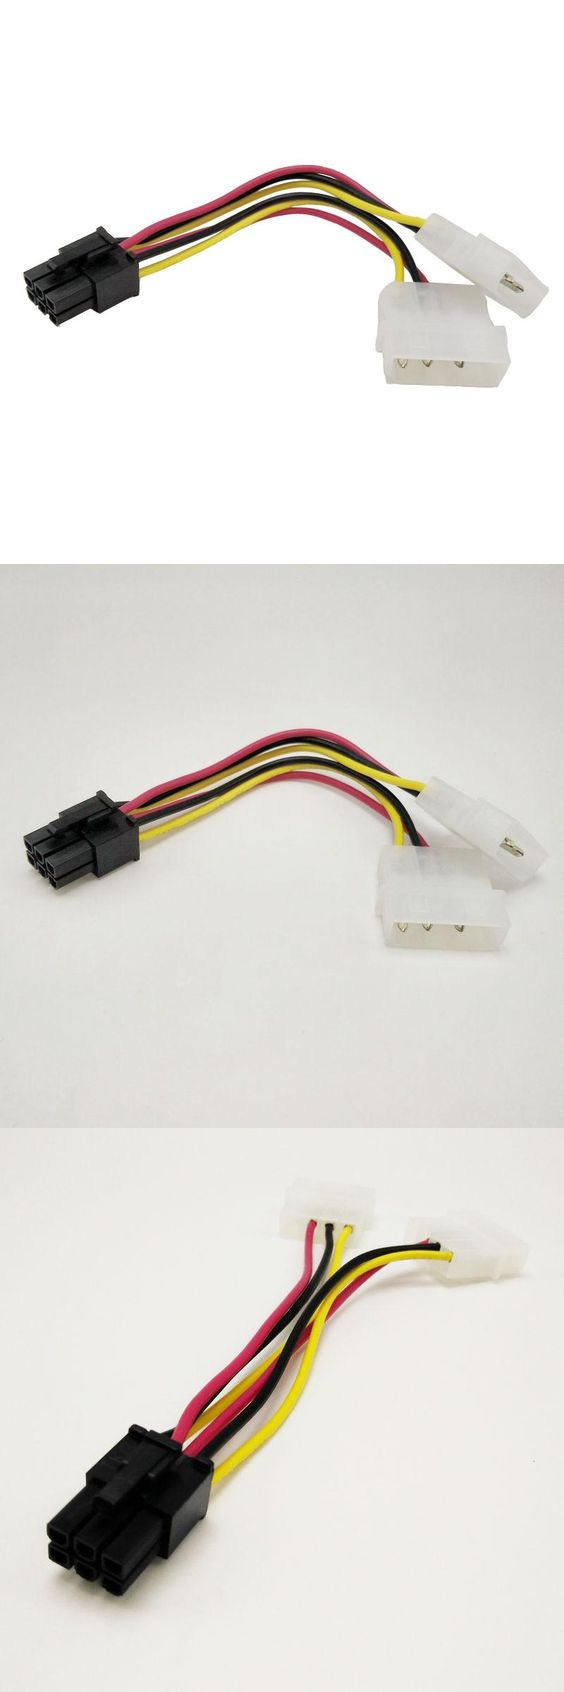 a8b970f7dae786609aa181b10b0d8d71 visit to buy] 4pcs high quality 2 x molex to pci e power adapter  at panicattacktreatment.co